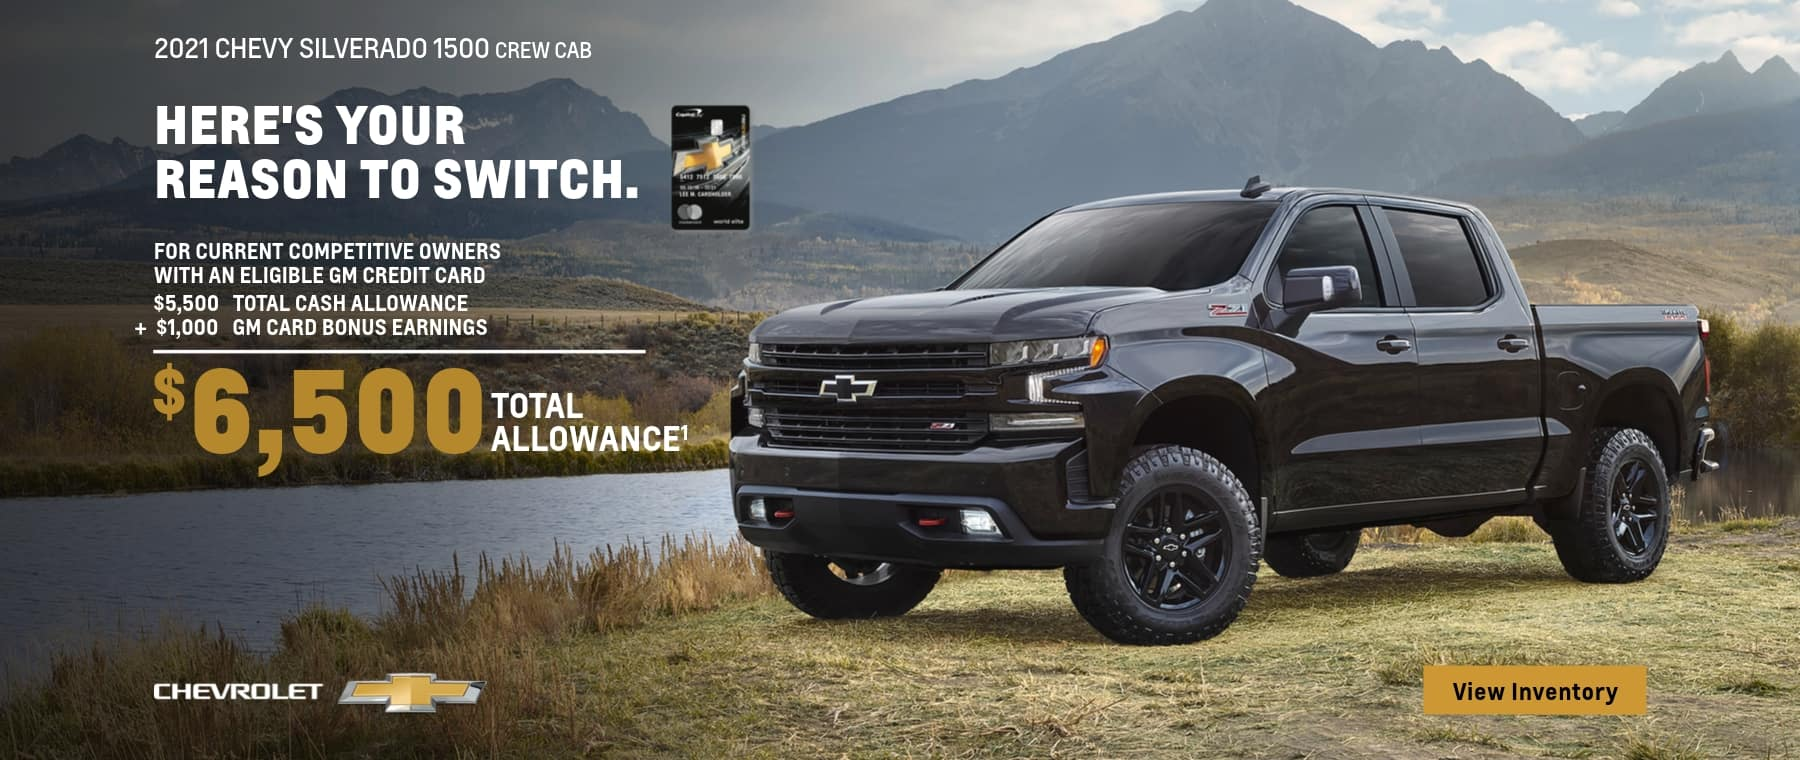 2021 chevy silverado 1500 crew cab for current competitive owners with an eligible gm credit card $5,500 total cash allowance + $1,000 gm card bonus earnings chevrolet $6,500 total allowance1 view inventory